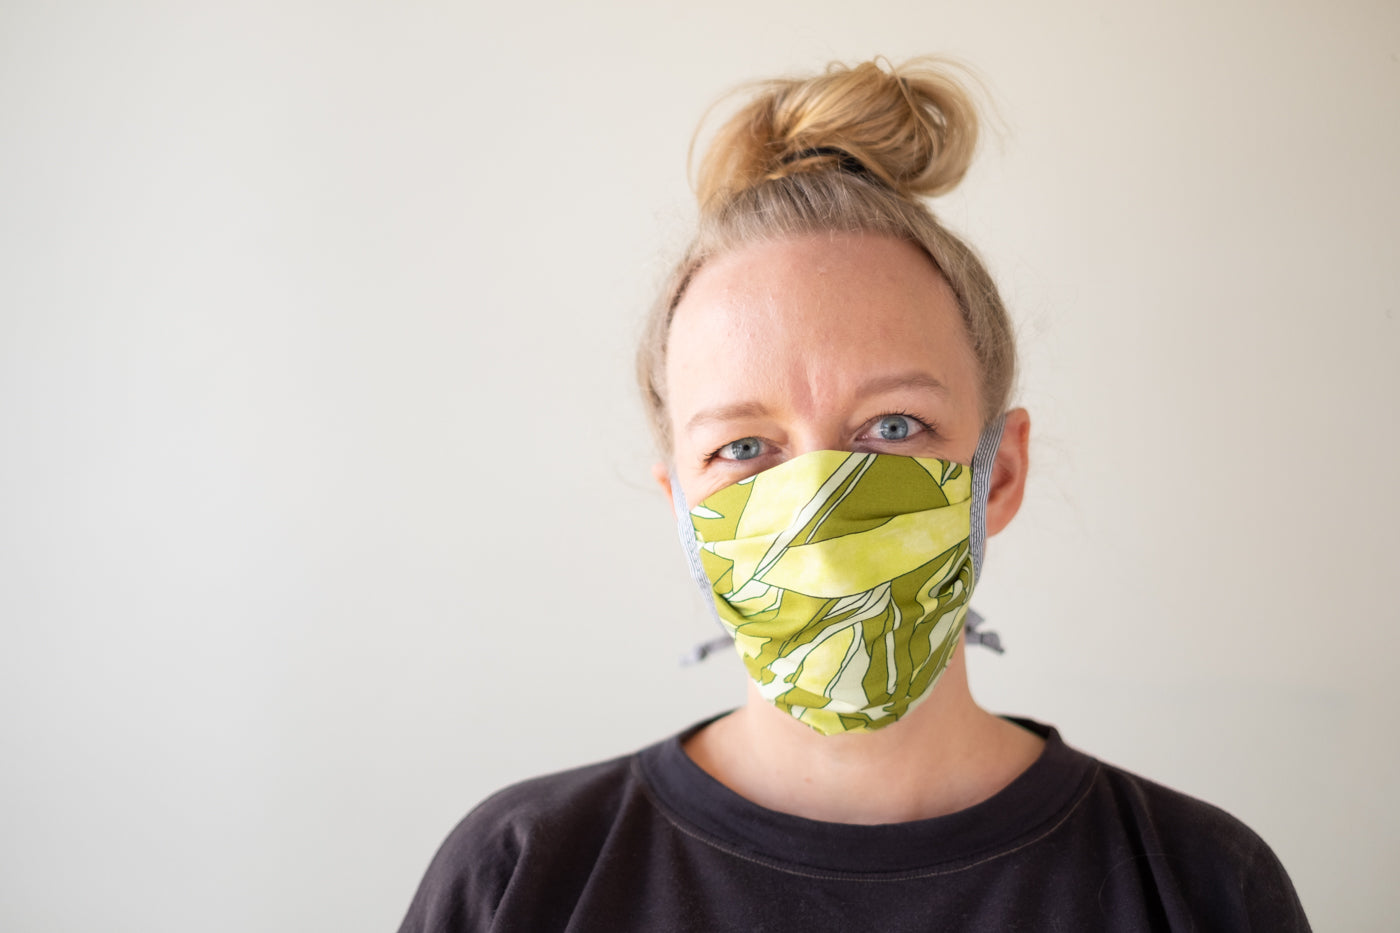 Amber wearing a green face mask.  Image is up close to showcase face mask.  Amber is wearing a black tshirt with her blonde hair in a bun.